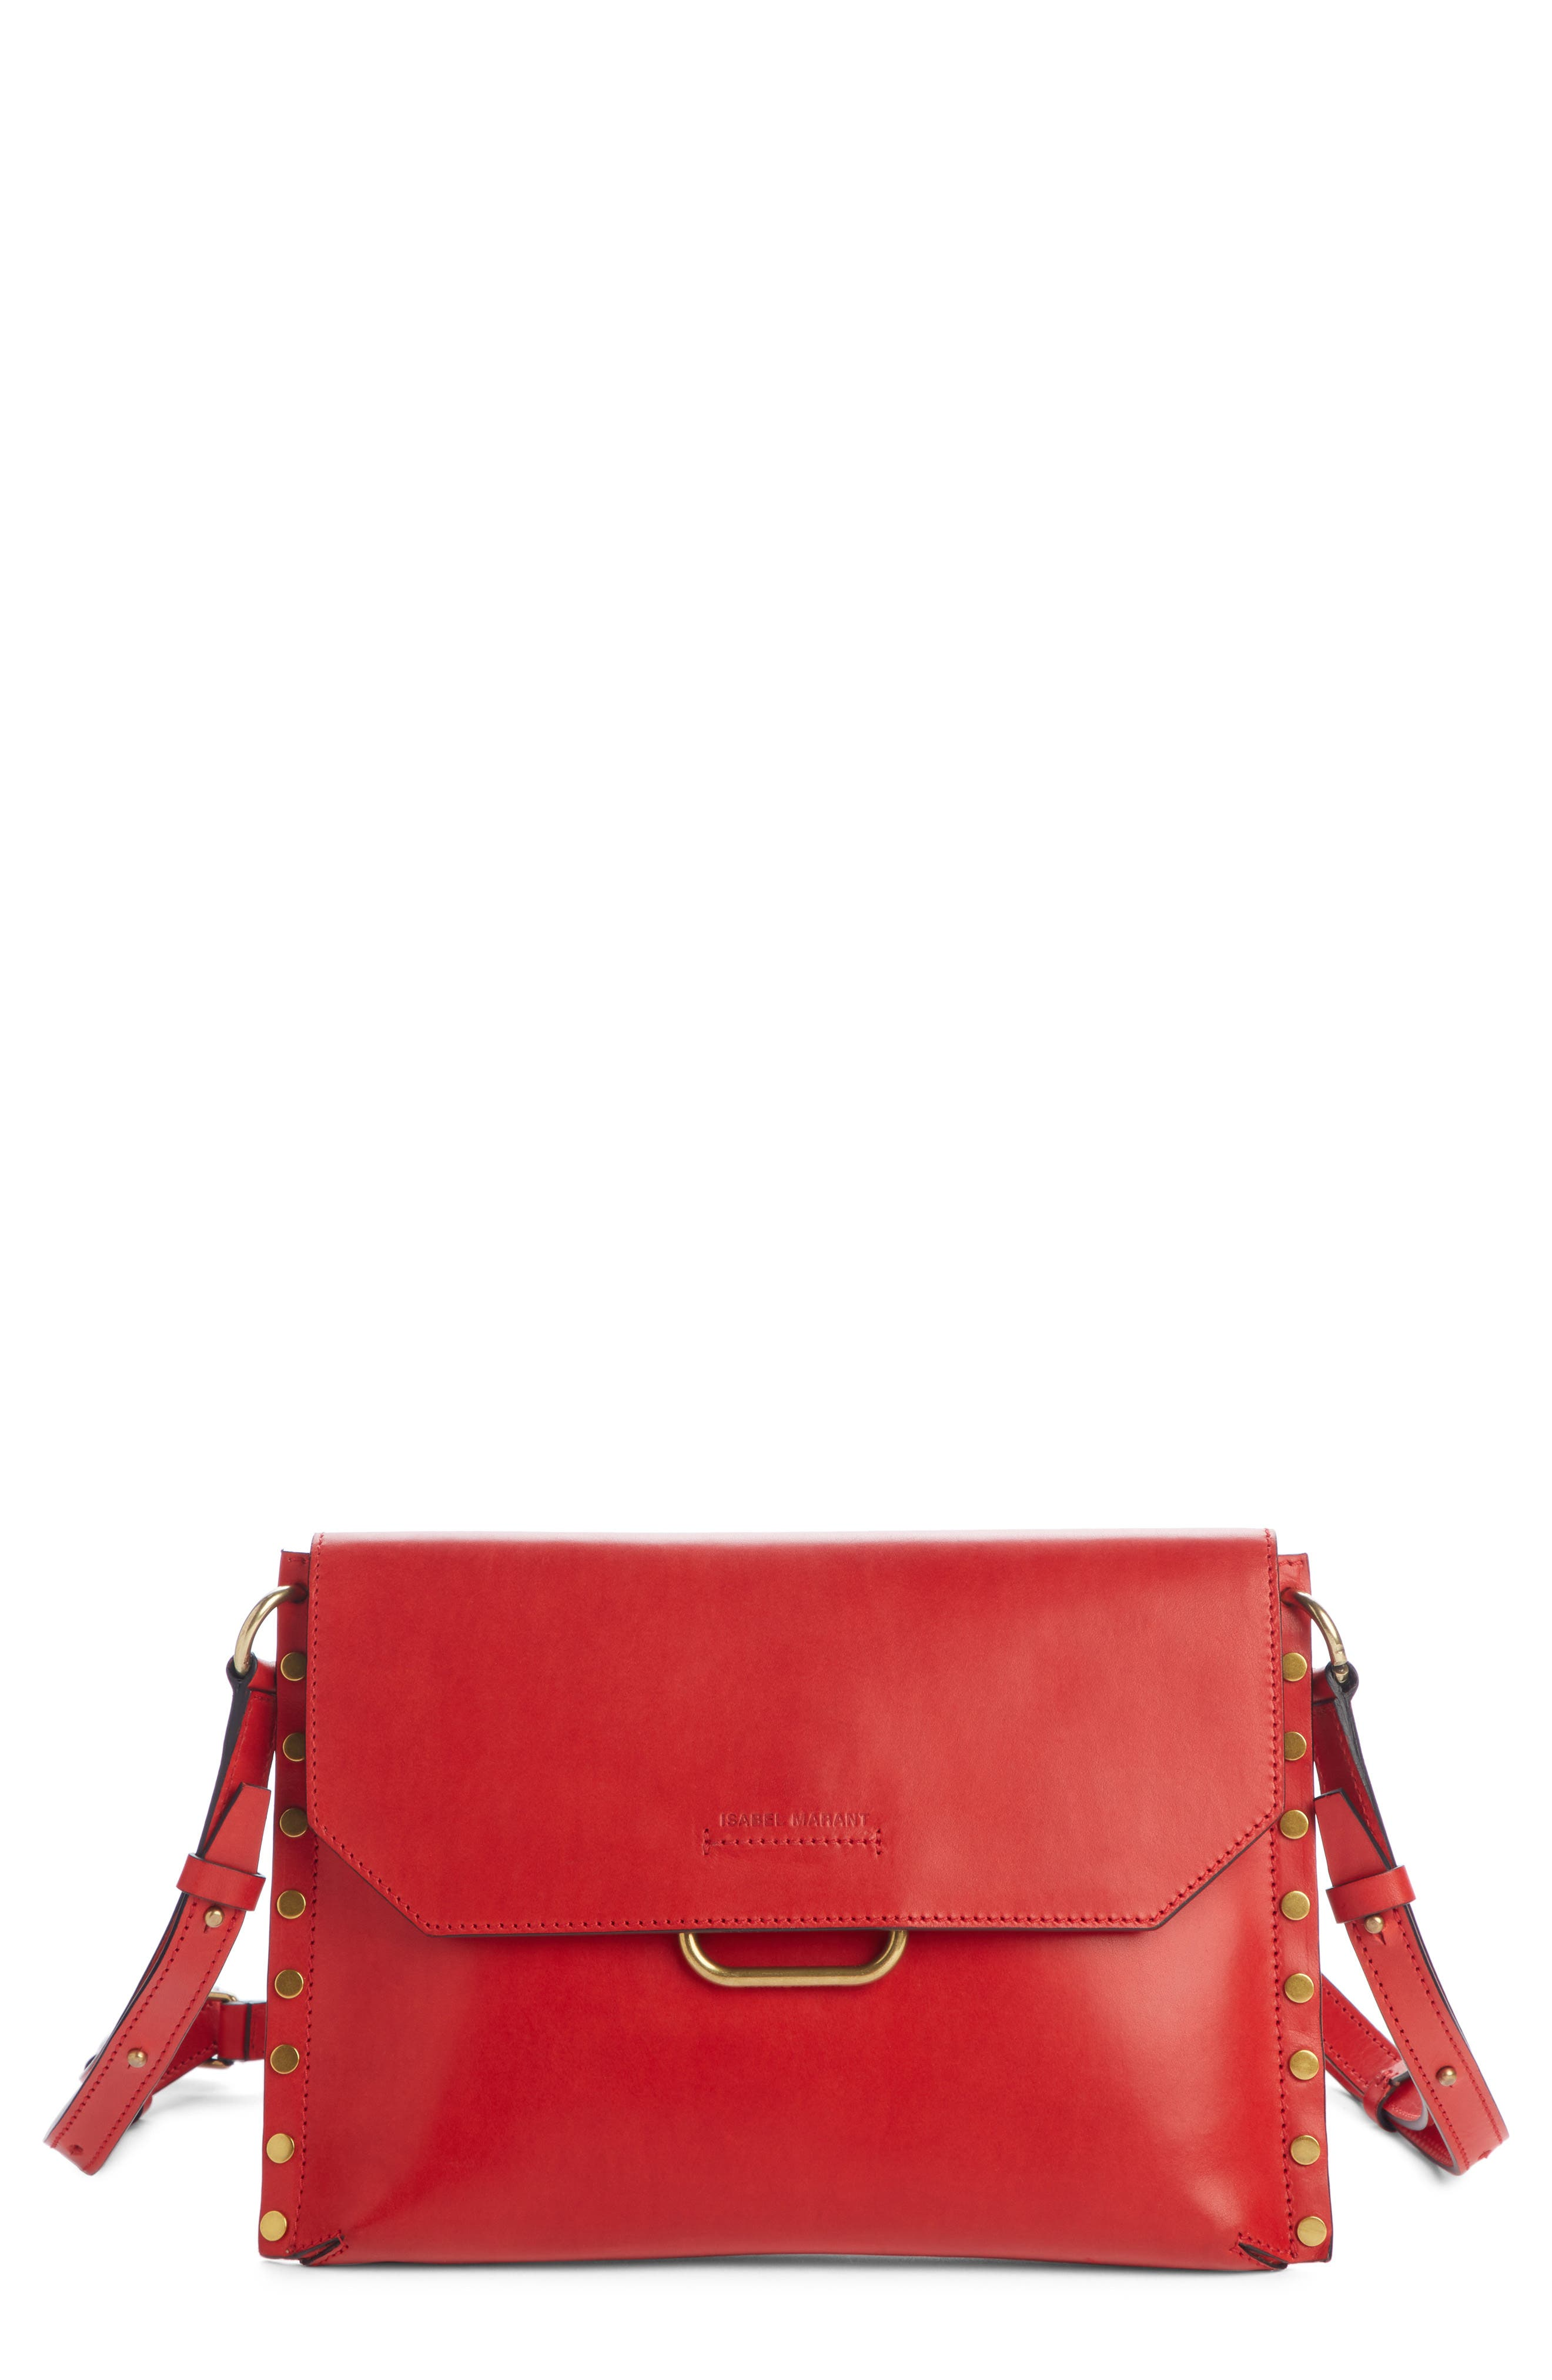 ISABEL MARANT,                             Sinky Leather Crossbody Bag,                             Main thumbnail 1, color,                             RED